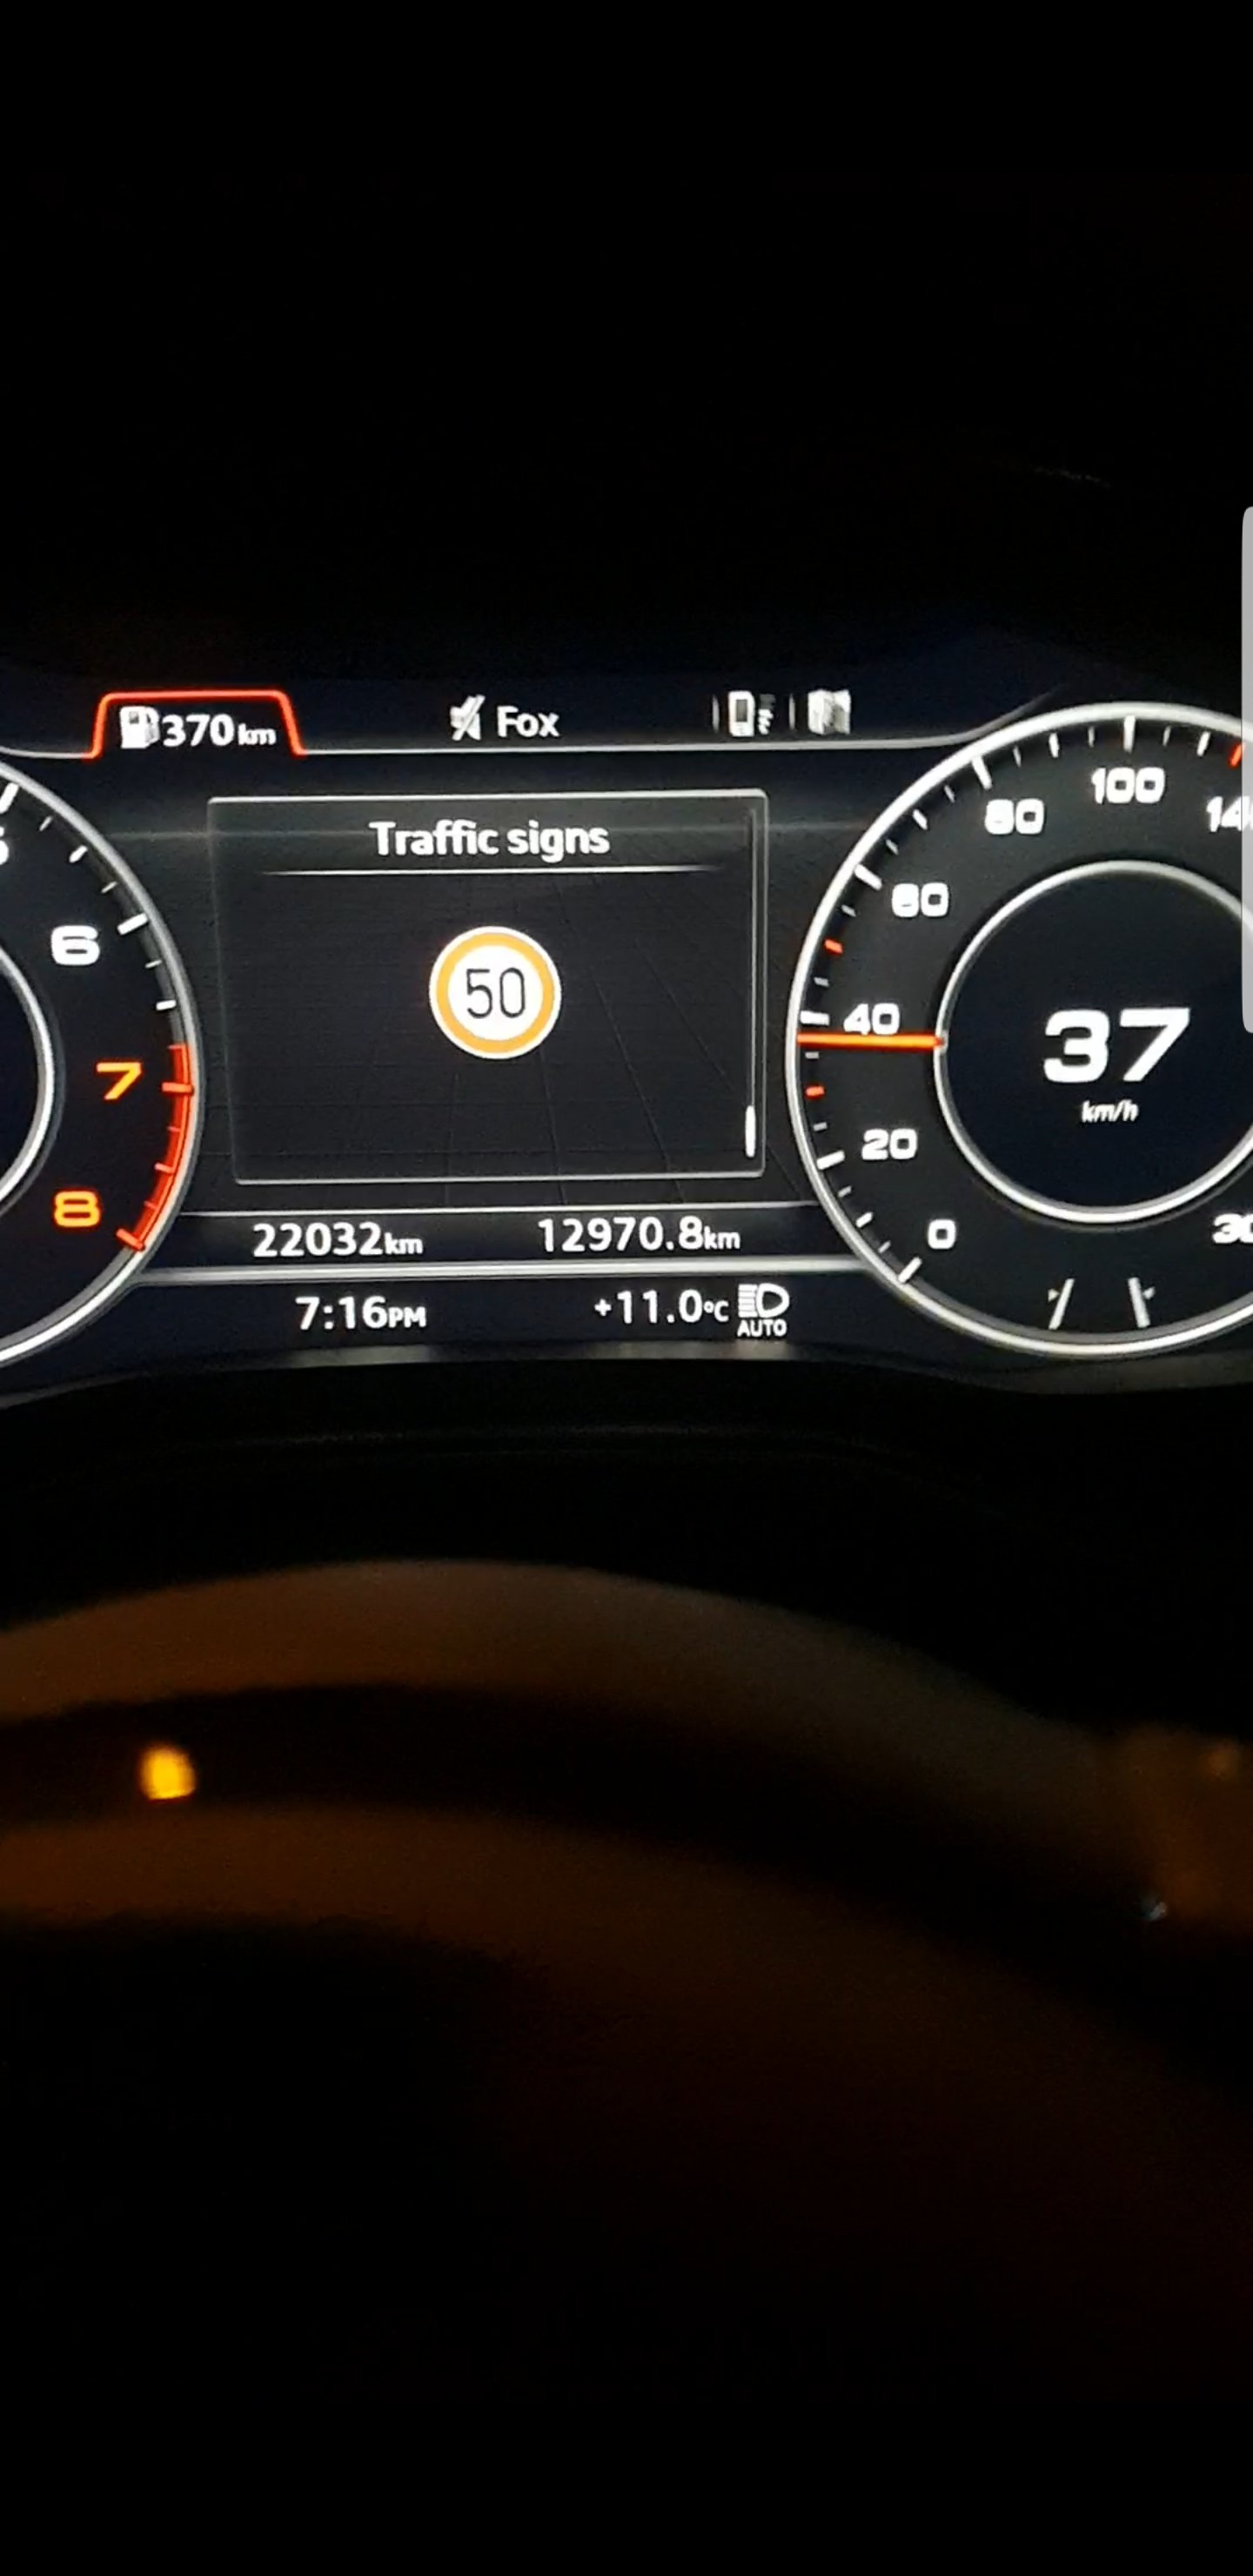 Traffic sign recognition Coded   Audi-Sport net